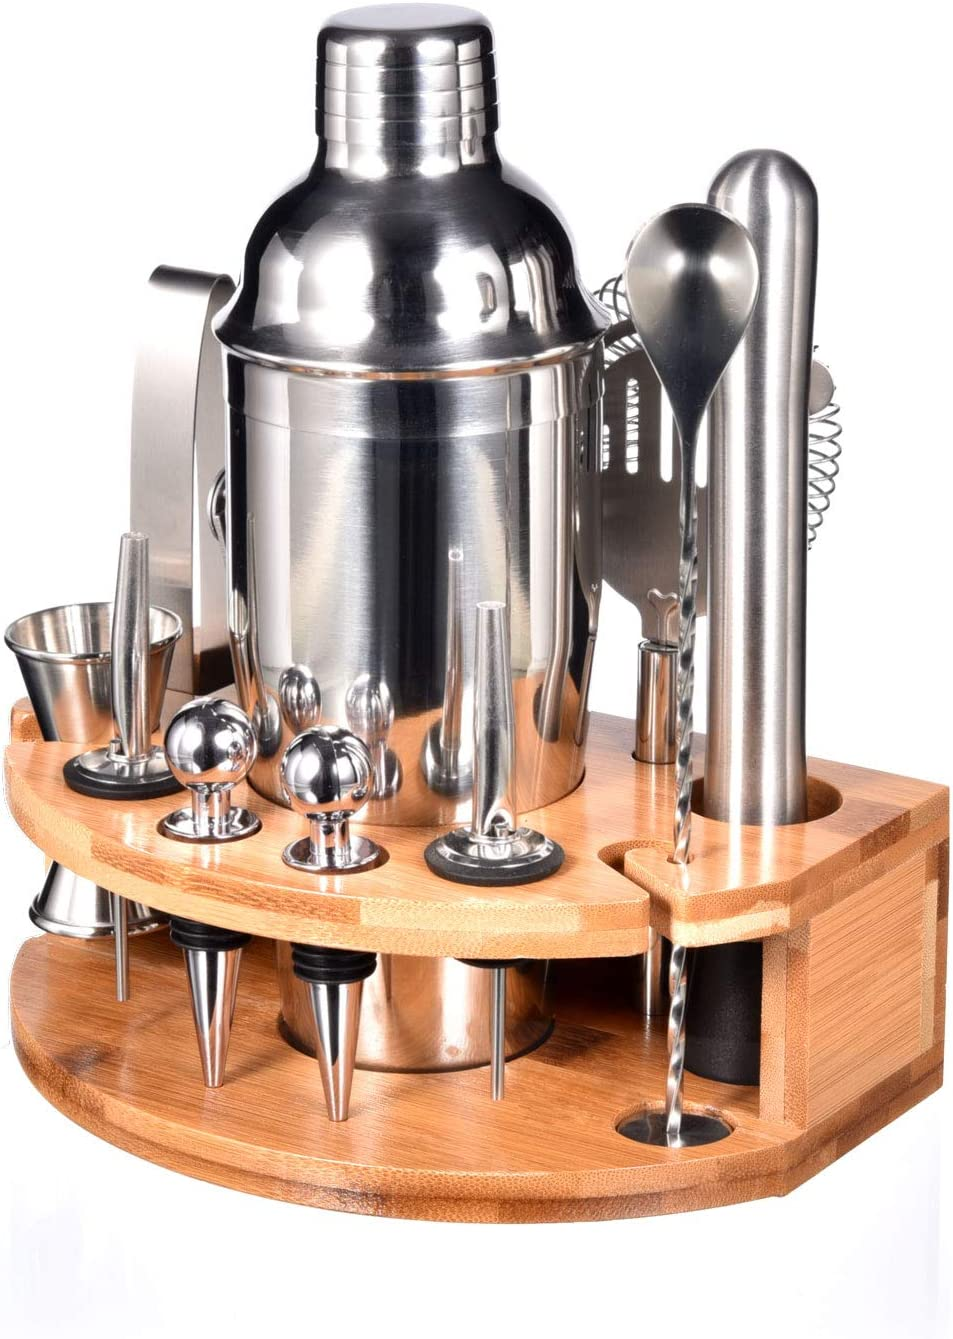 Bartender Kit with Stylish Bamboo Stand, 12 Piece Cocktail Shaker Set for Mixed Drink, Professional Stainless Steel Bar Tool Set - Cocktail Recipes Booklet(25 oz)